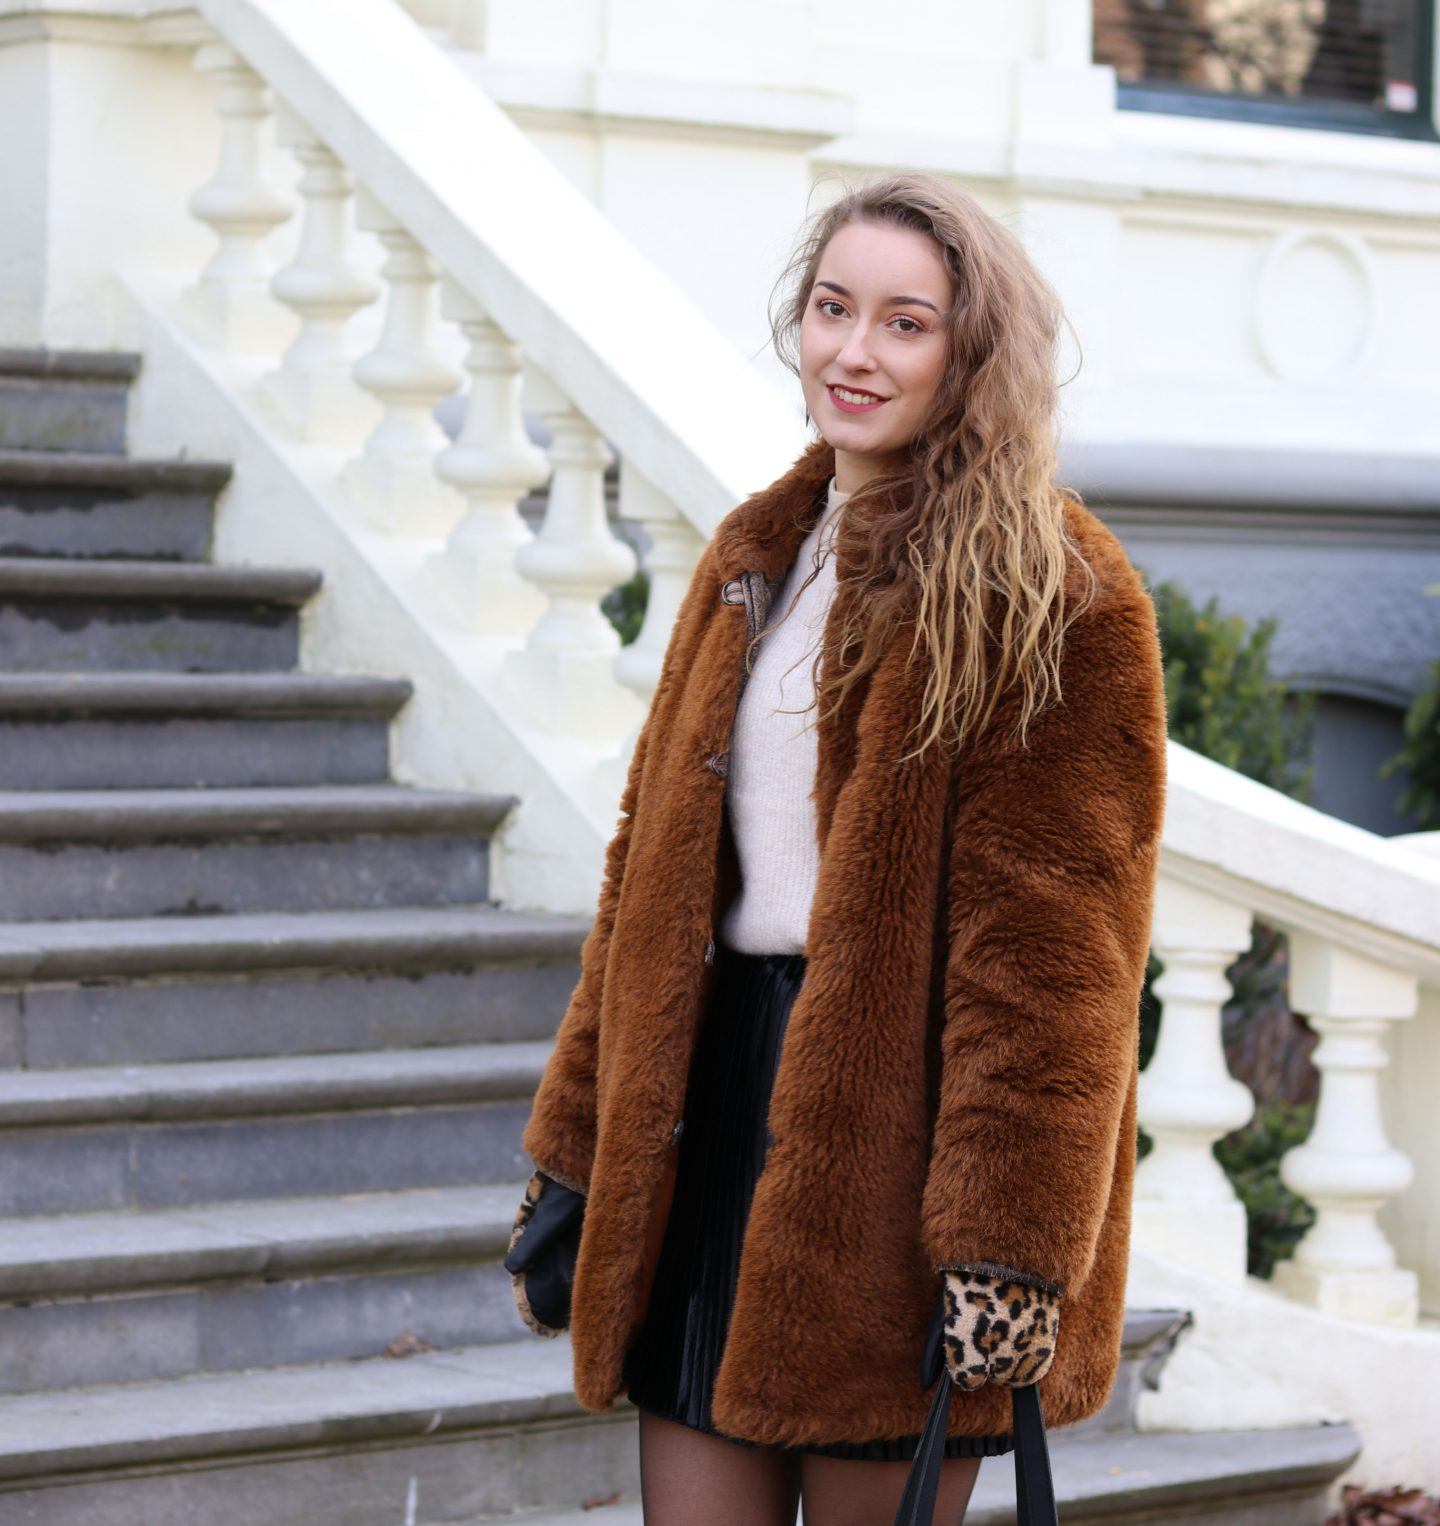 Outfit | Walking down the streets with my Teddy coat